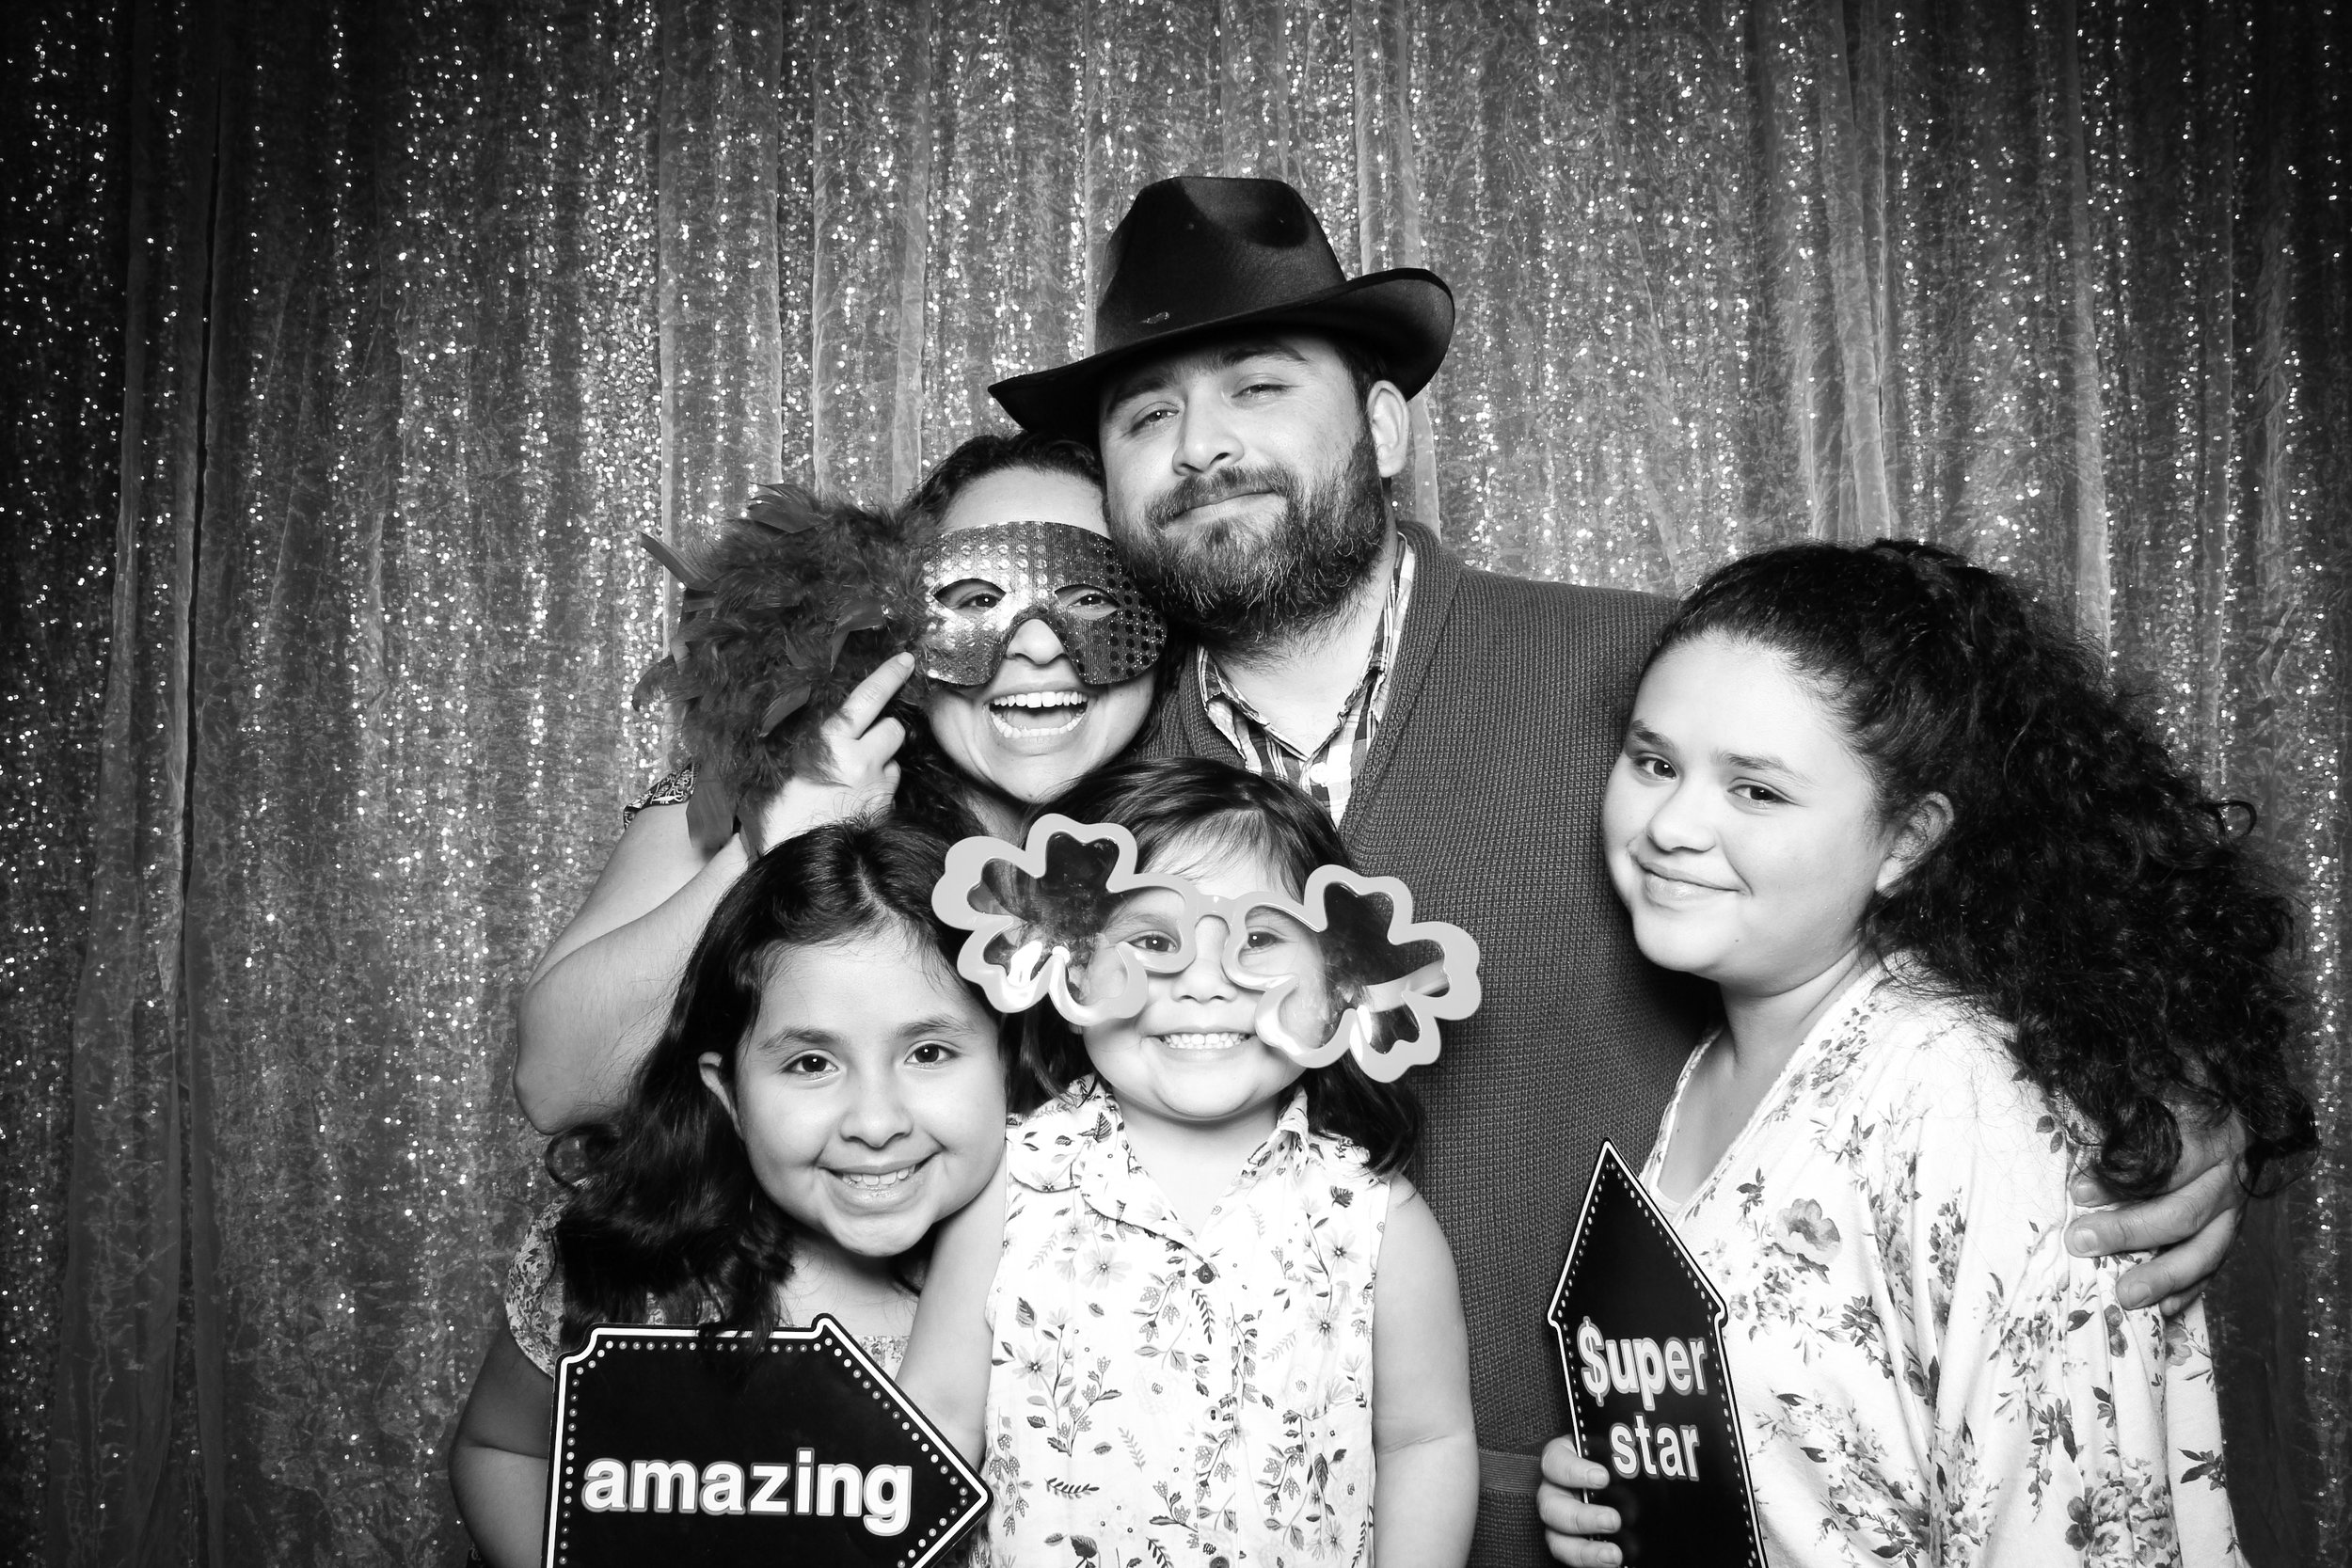 Chicago_Vintage_Wedding_Photobooth_Downers_Grove_10.jpg